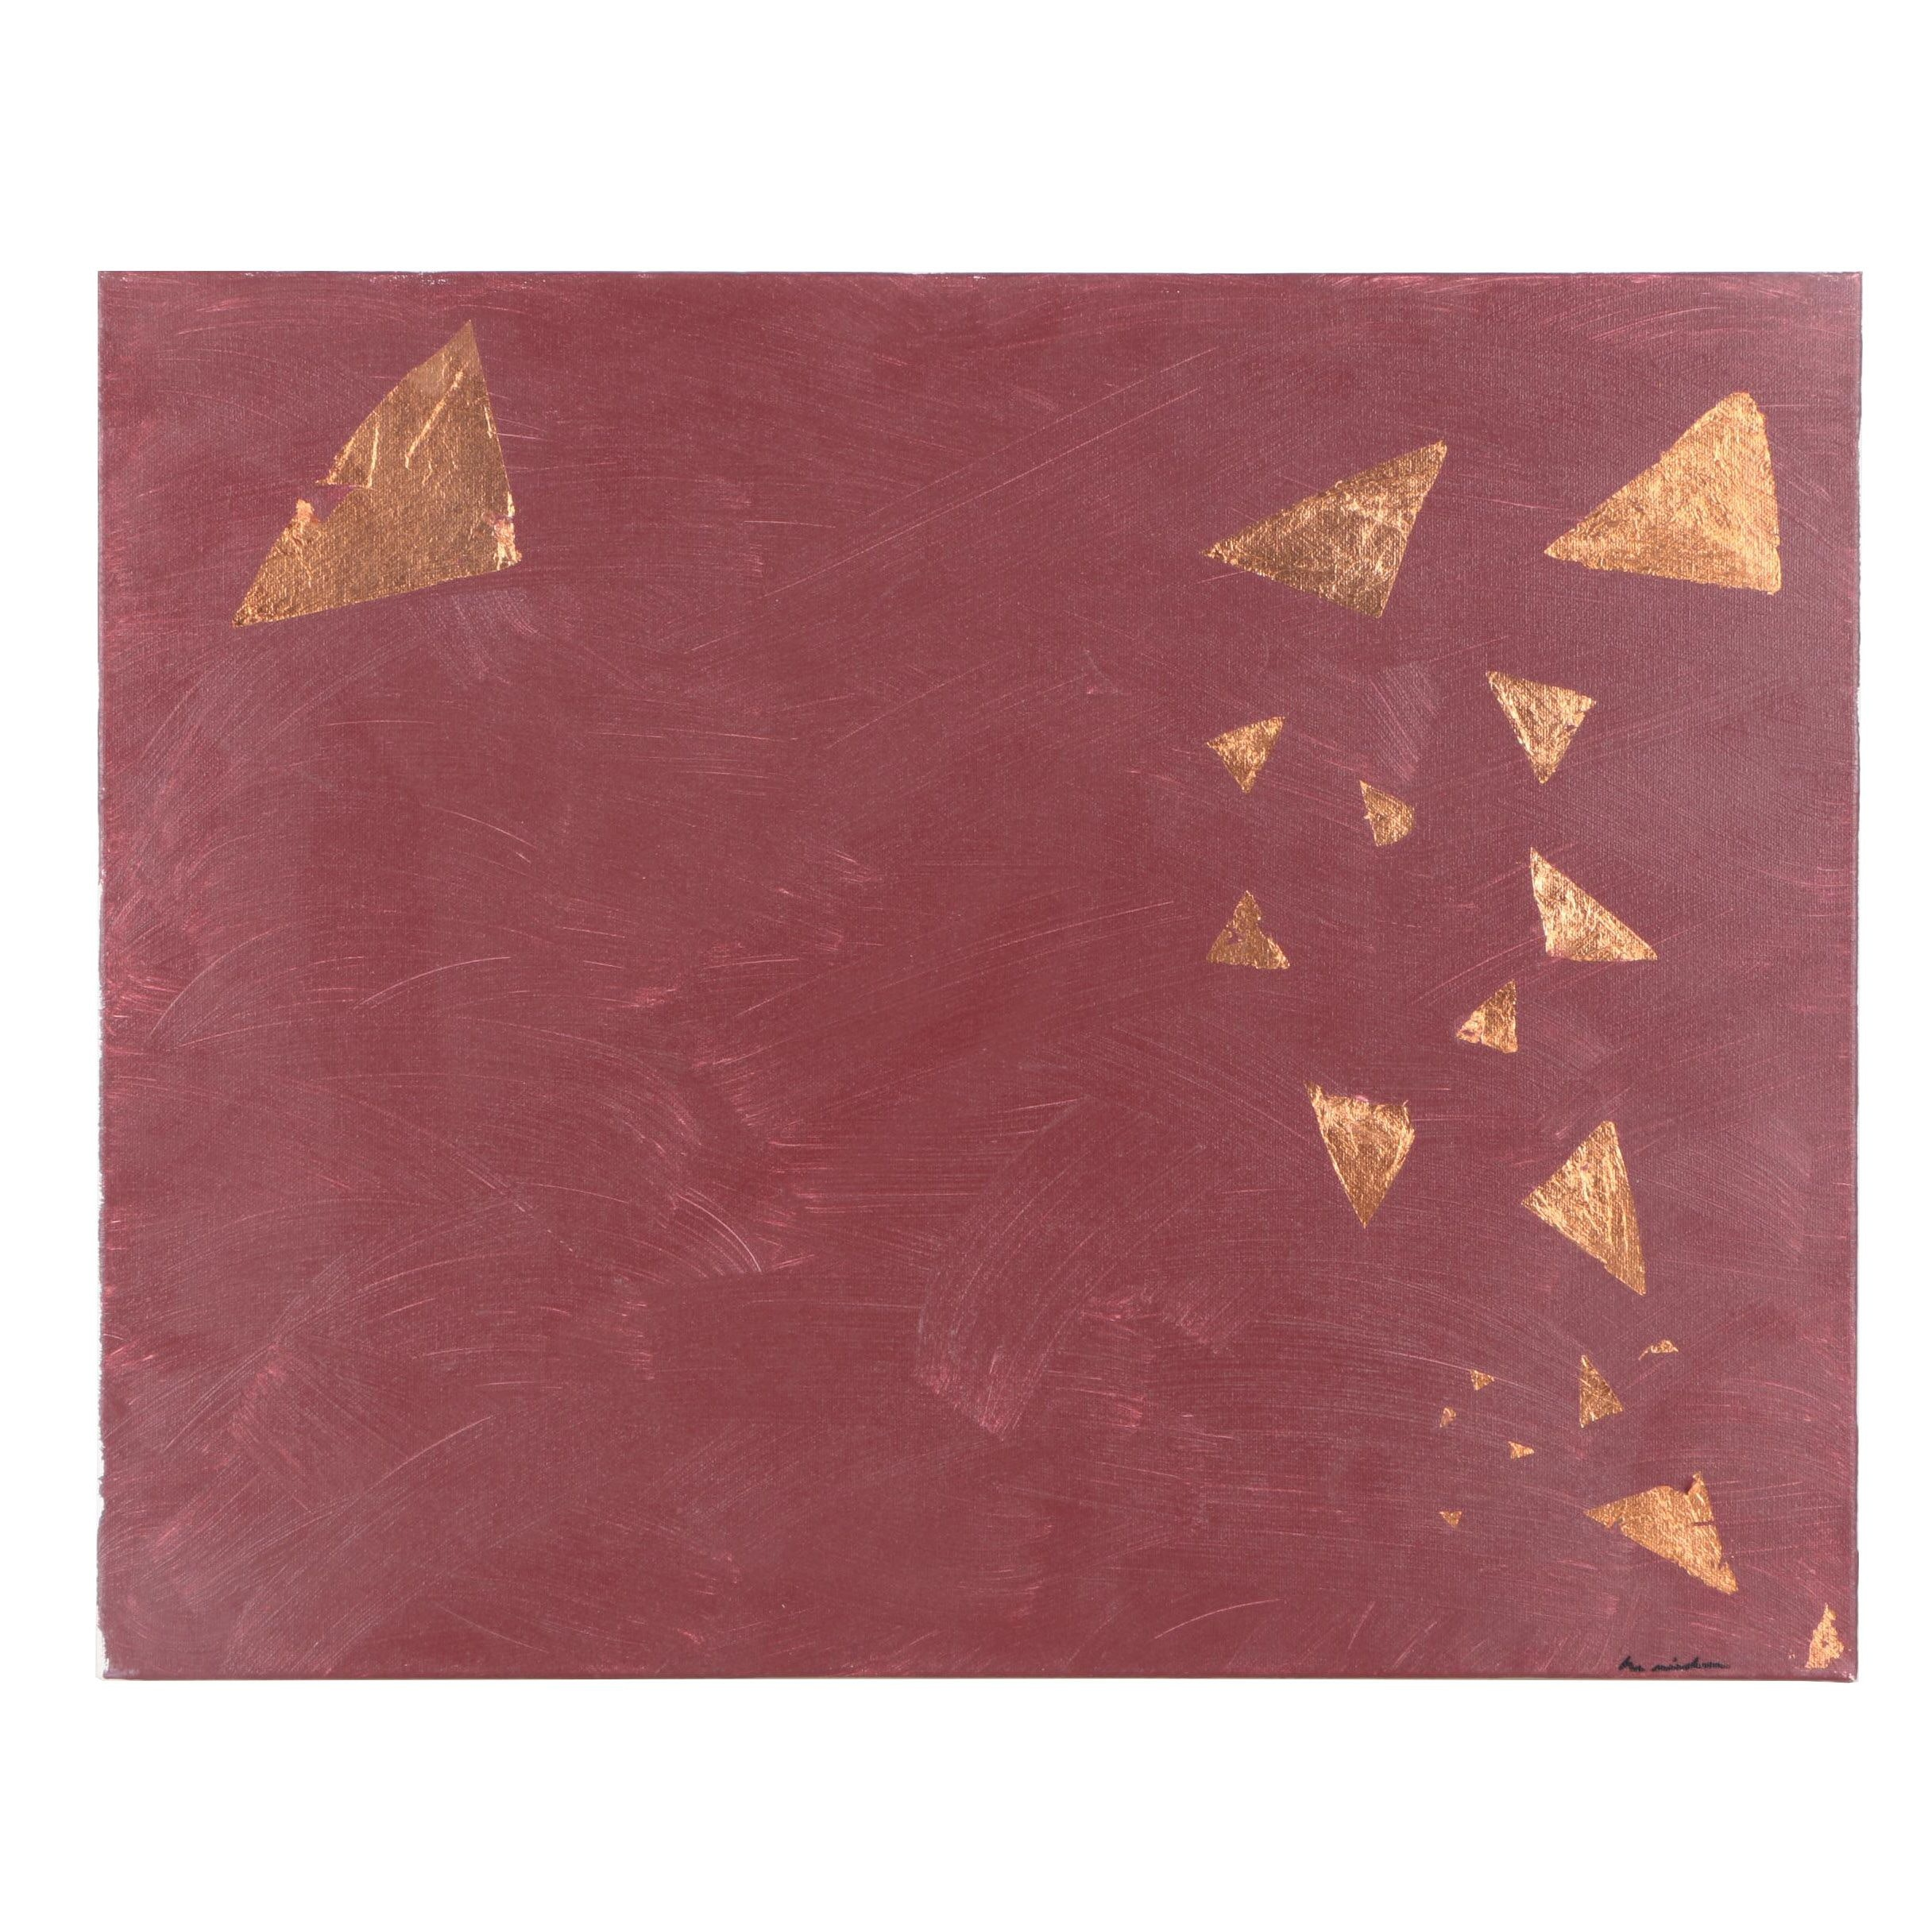 Abstract Mixed Media Painting With Gold Foil on Canvas